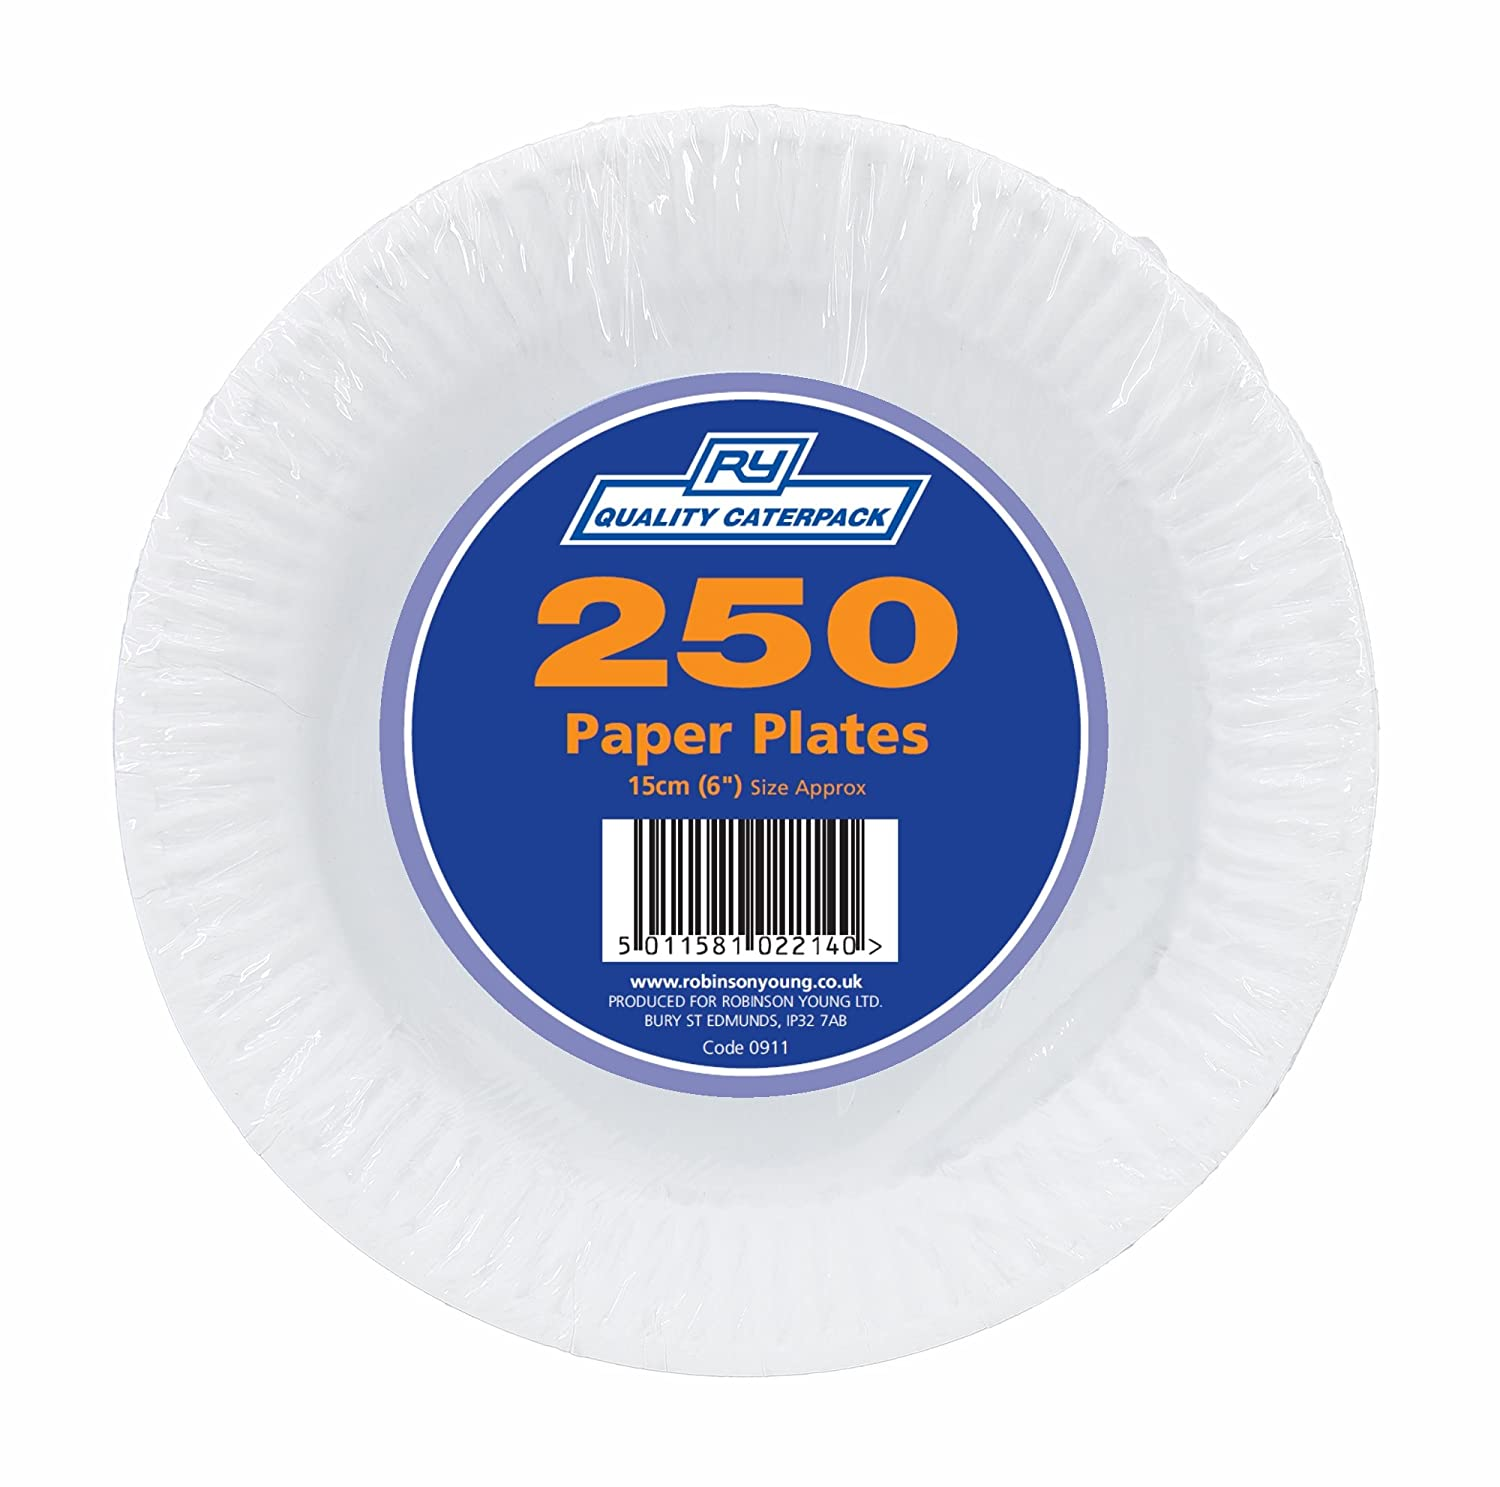 caterpack Platos de Papel, Color Blanco, 15,2  cm, 250  Unidades 2 cm 250 Unidades robinson young 00911